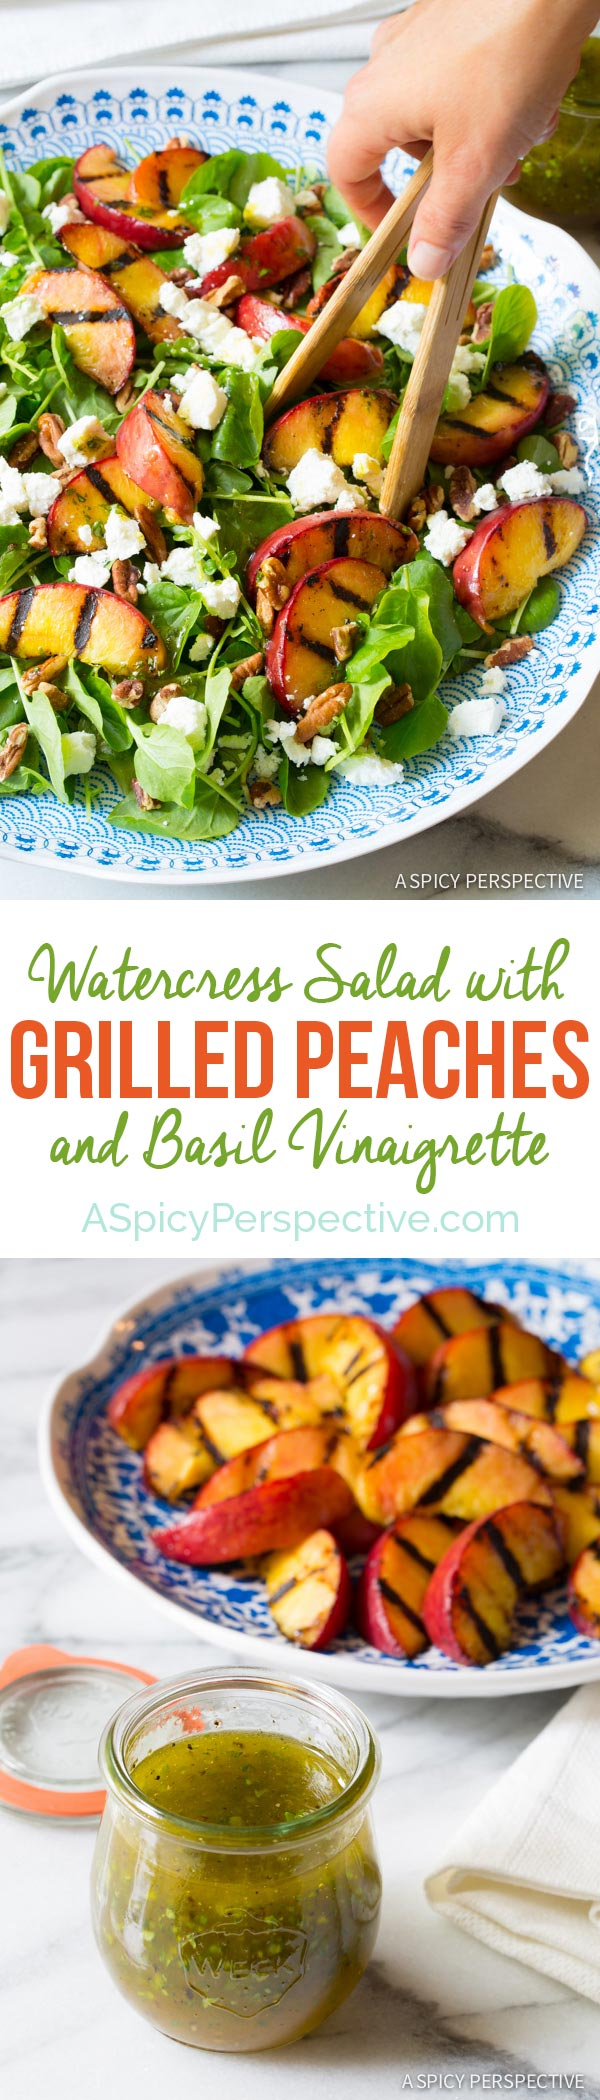 Amazingly Simple Watercress Salad with GRILLED PEACHES and Basil Vinaigrette on ASpicyPerspective.com #salad #peaches